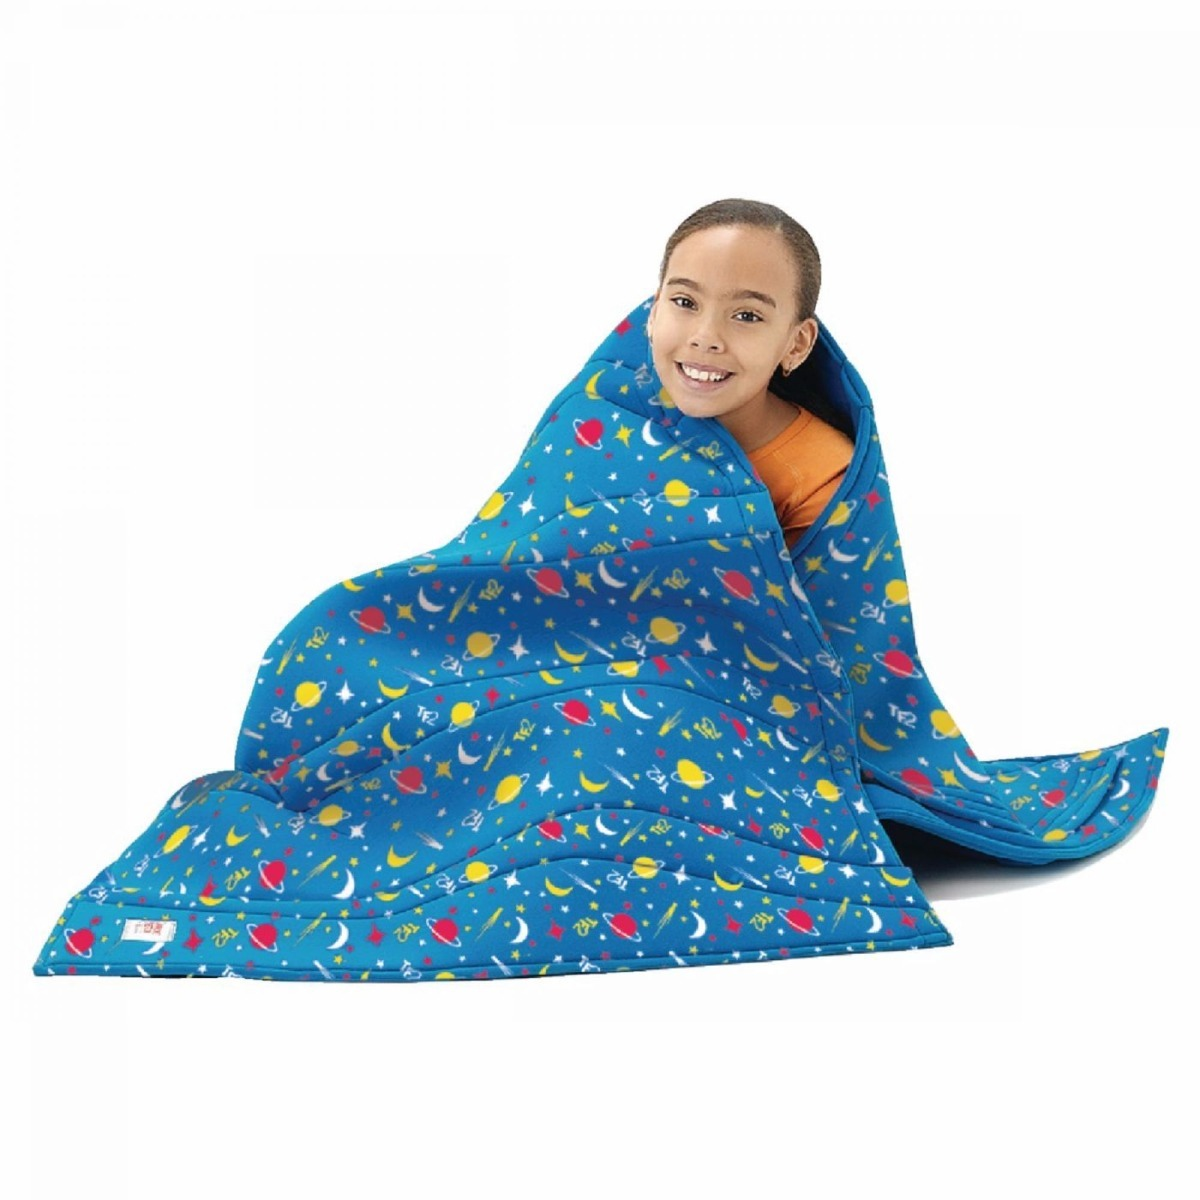 Tumble Forms 2 Weighted Blankets